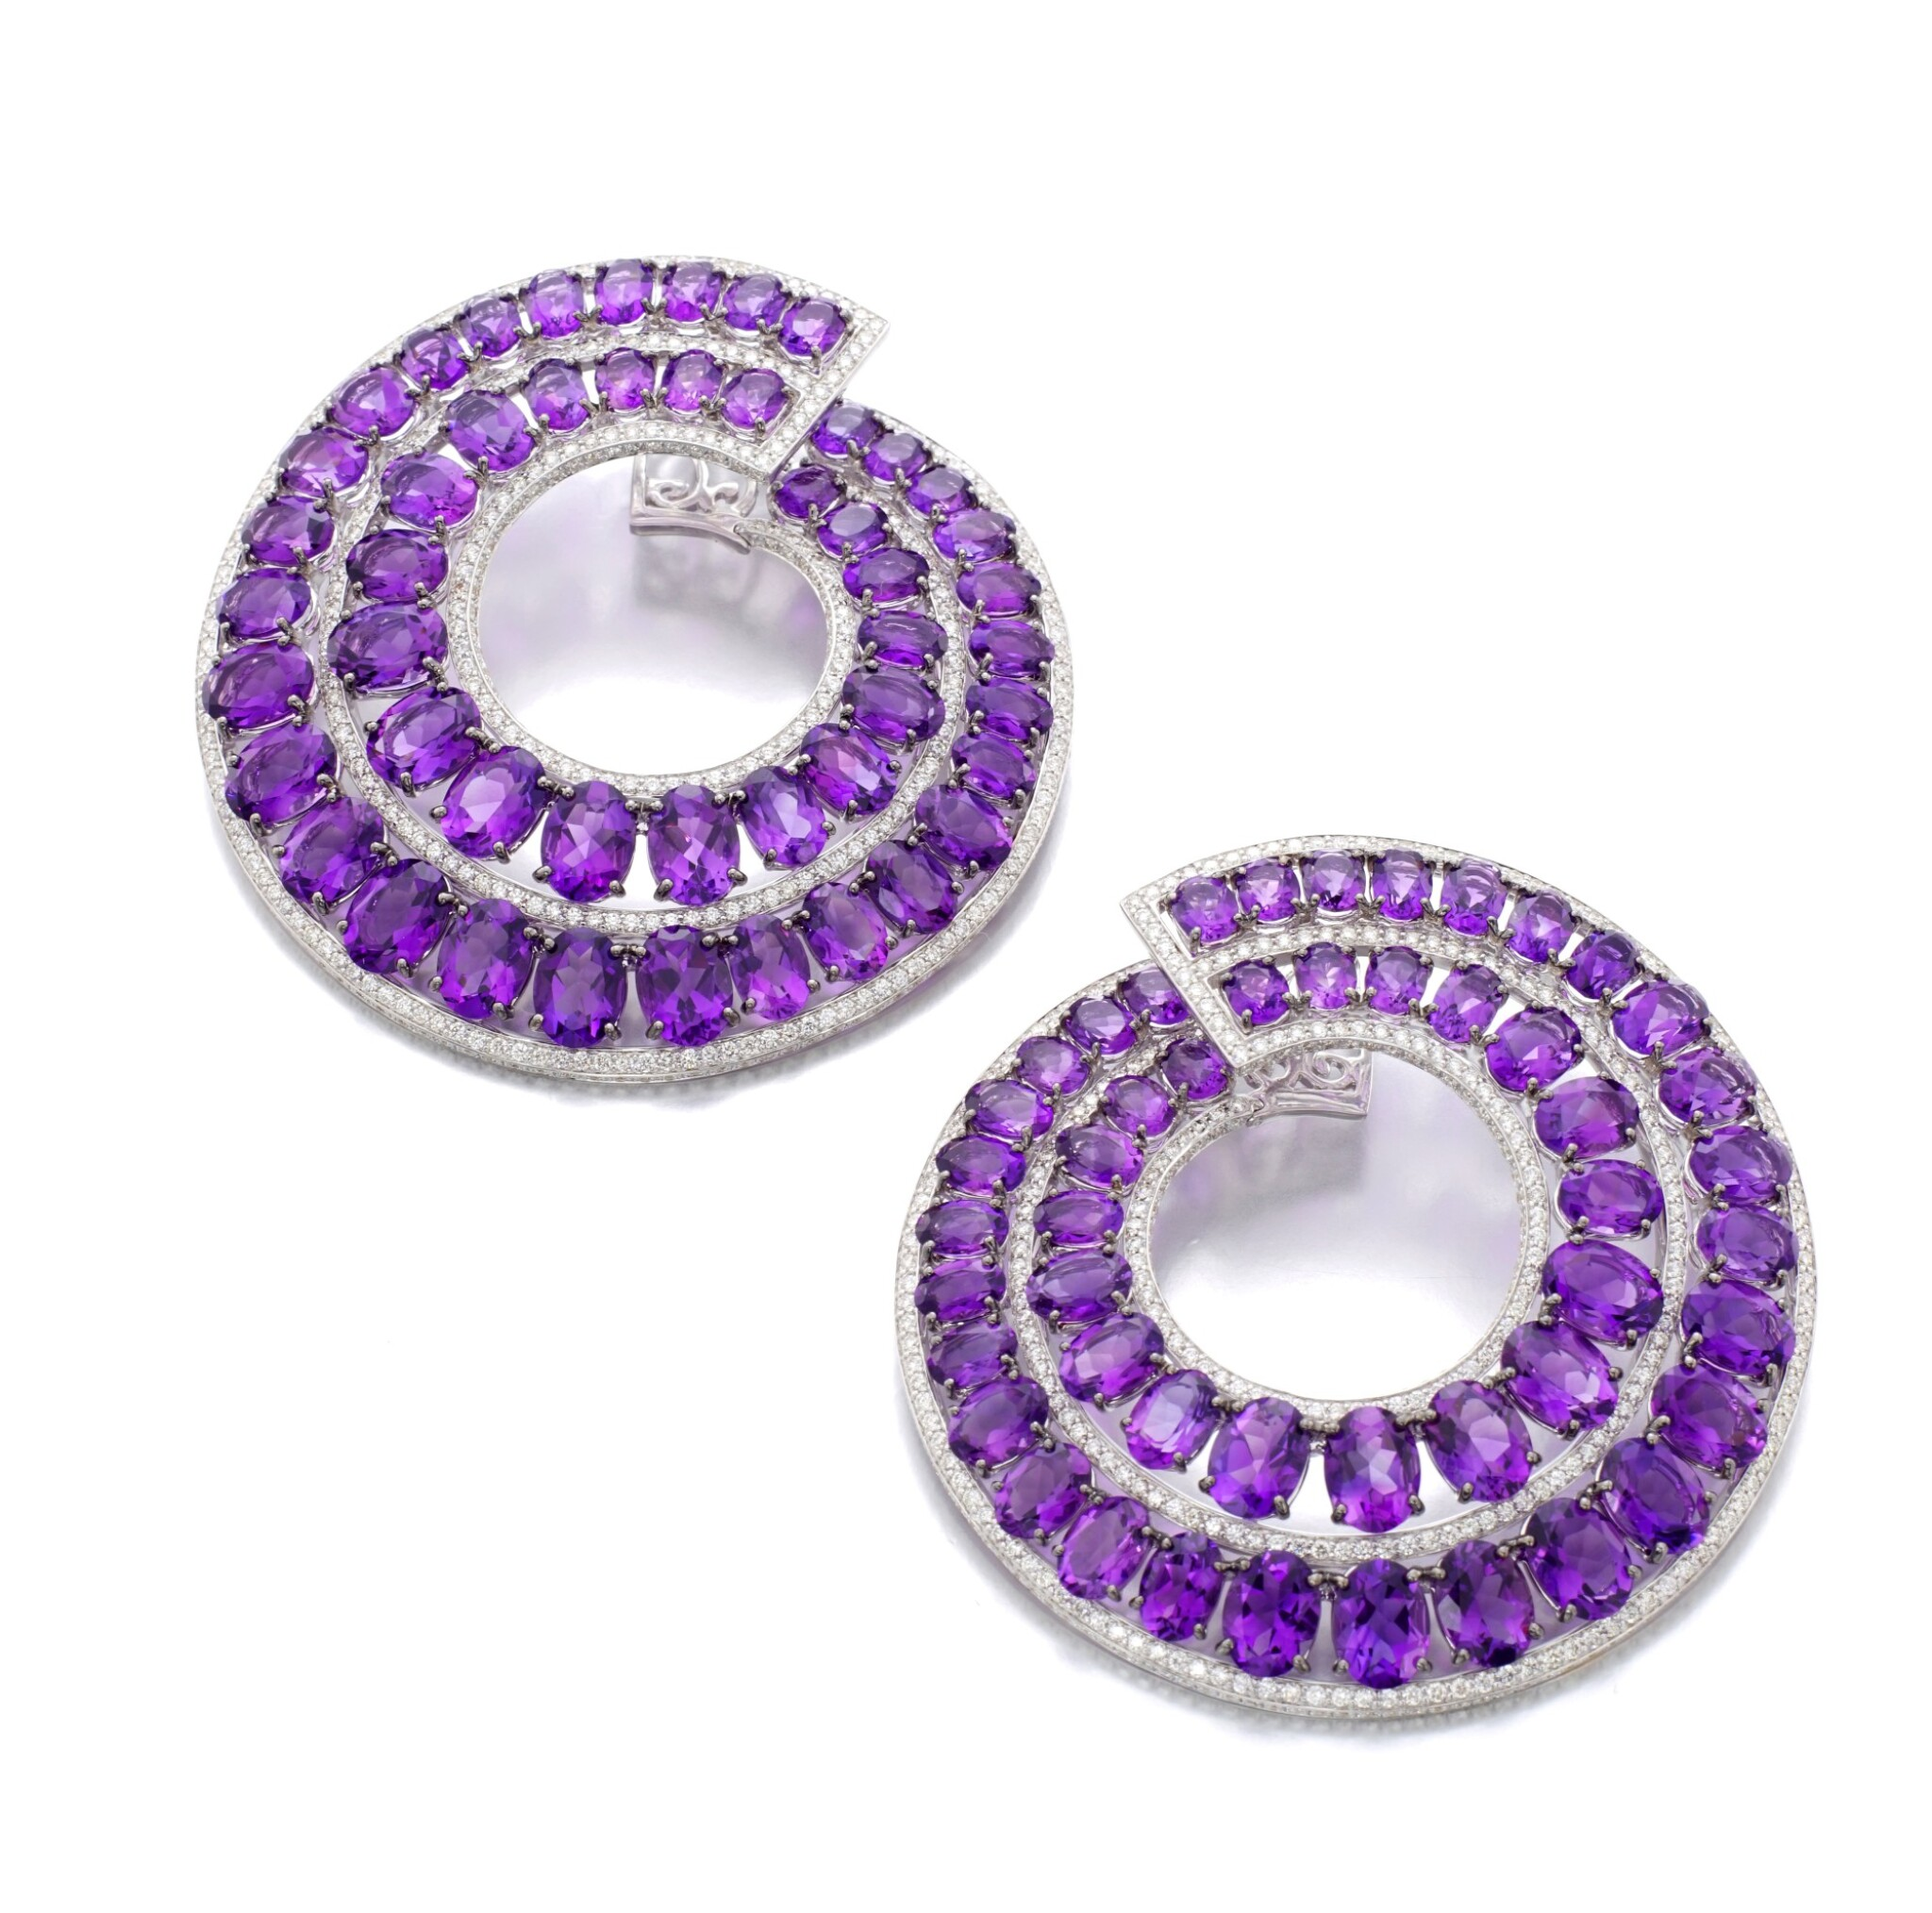 View full screen - View 1 of Lot 30. MICHELE DELLA VALLE   PAIR OF AMETHYST AND DIAMOND EARRINGS.